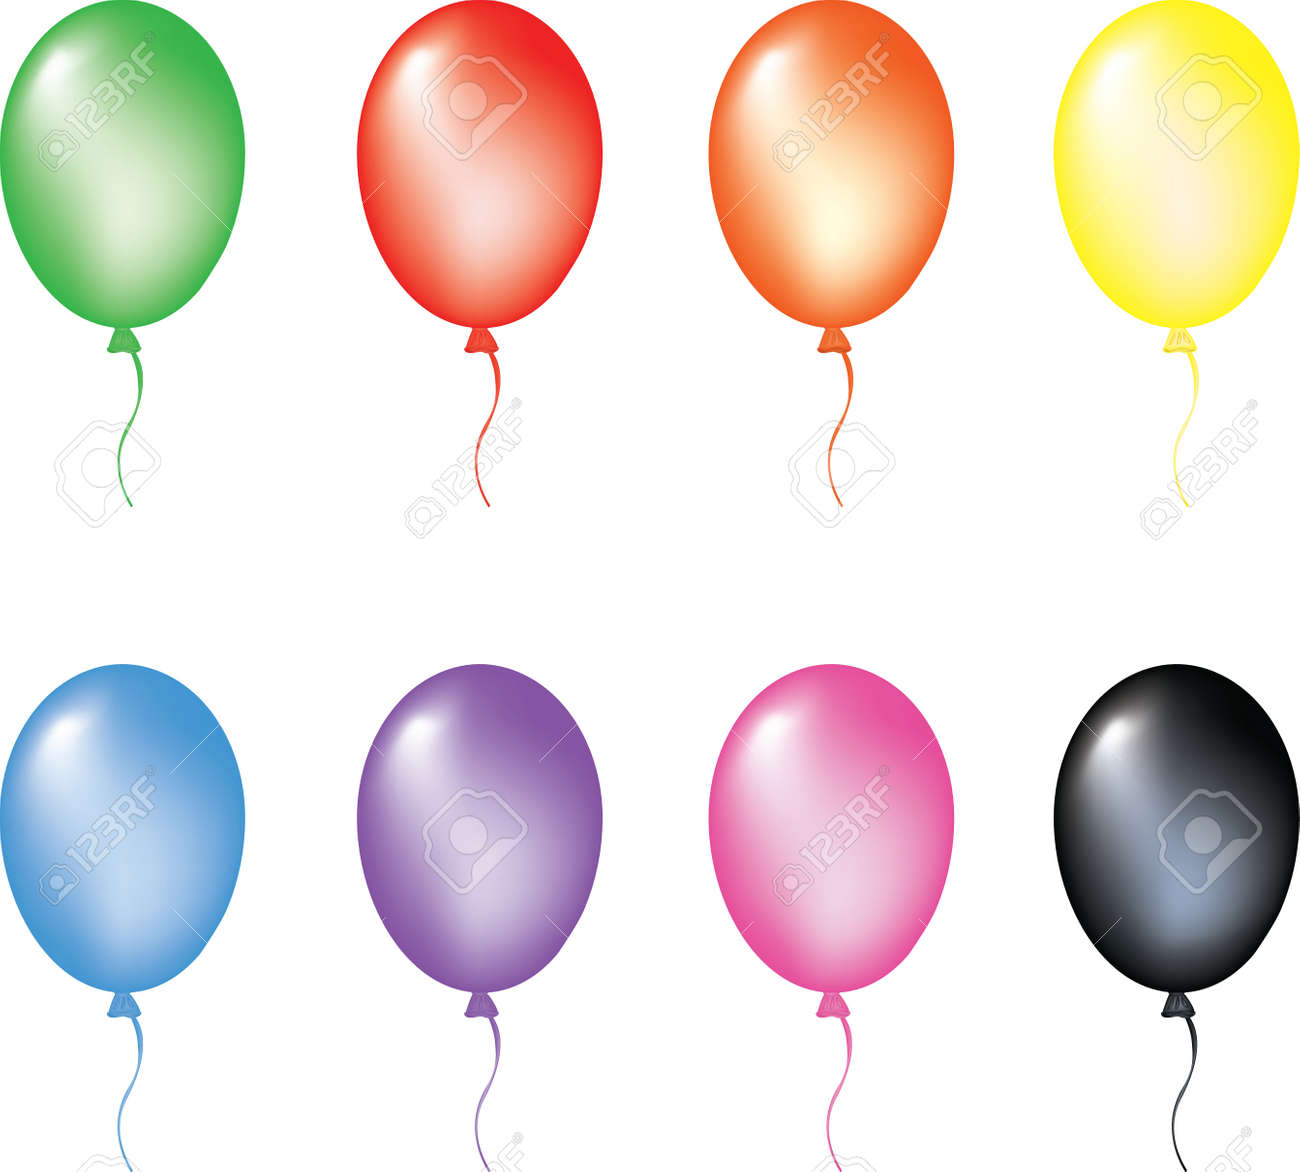 Multi color balloons. Vector illustration. isolated on white background, EPS8, all parts closed, possibility to edit. Stock Vector - 3335924